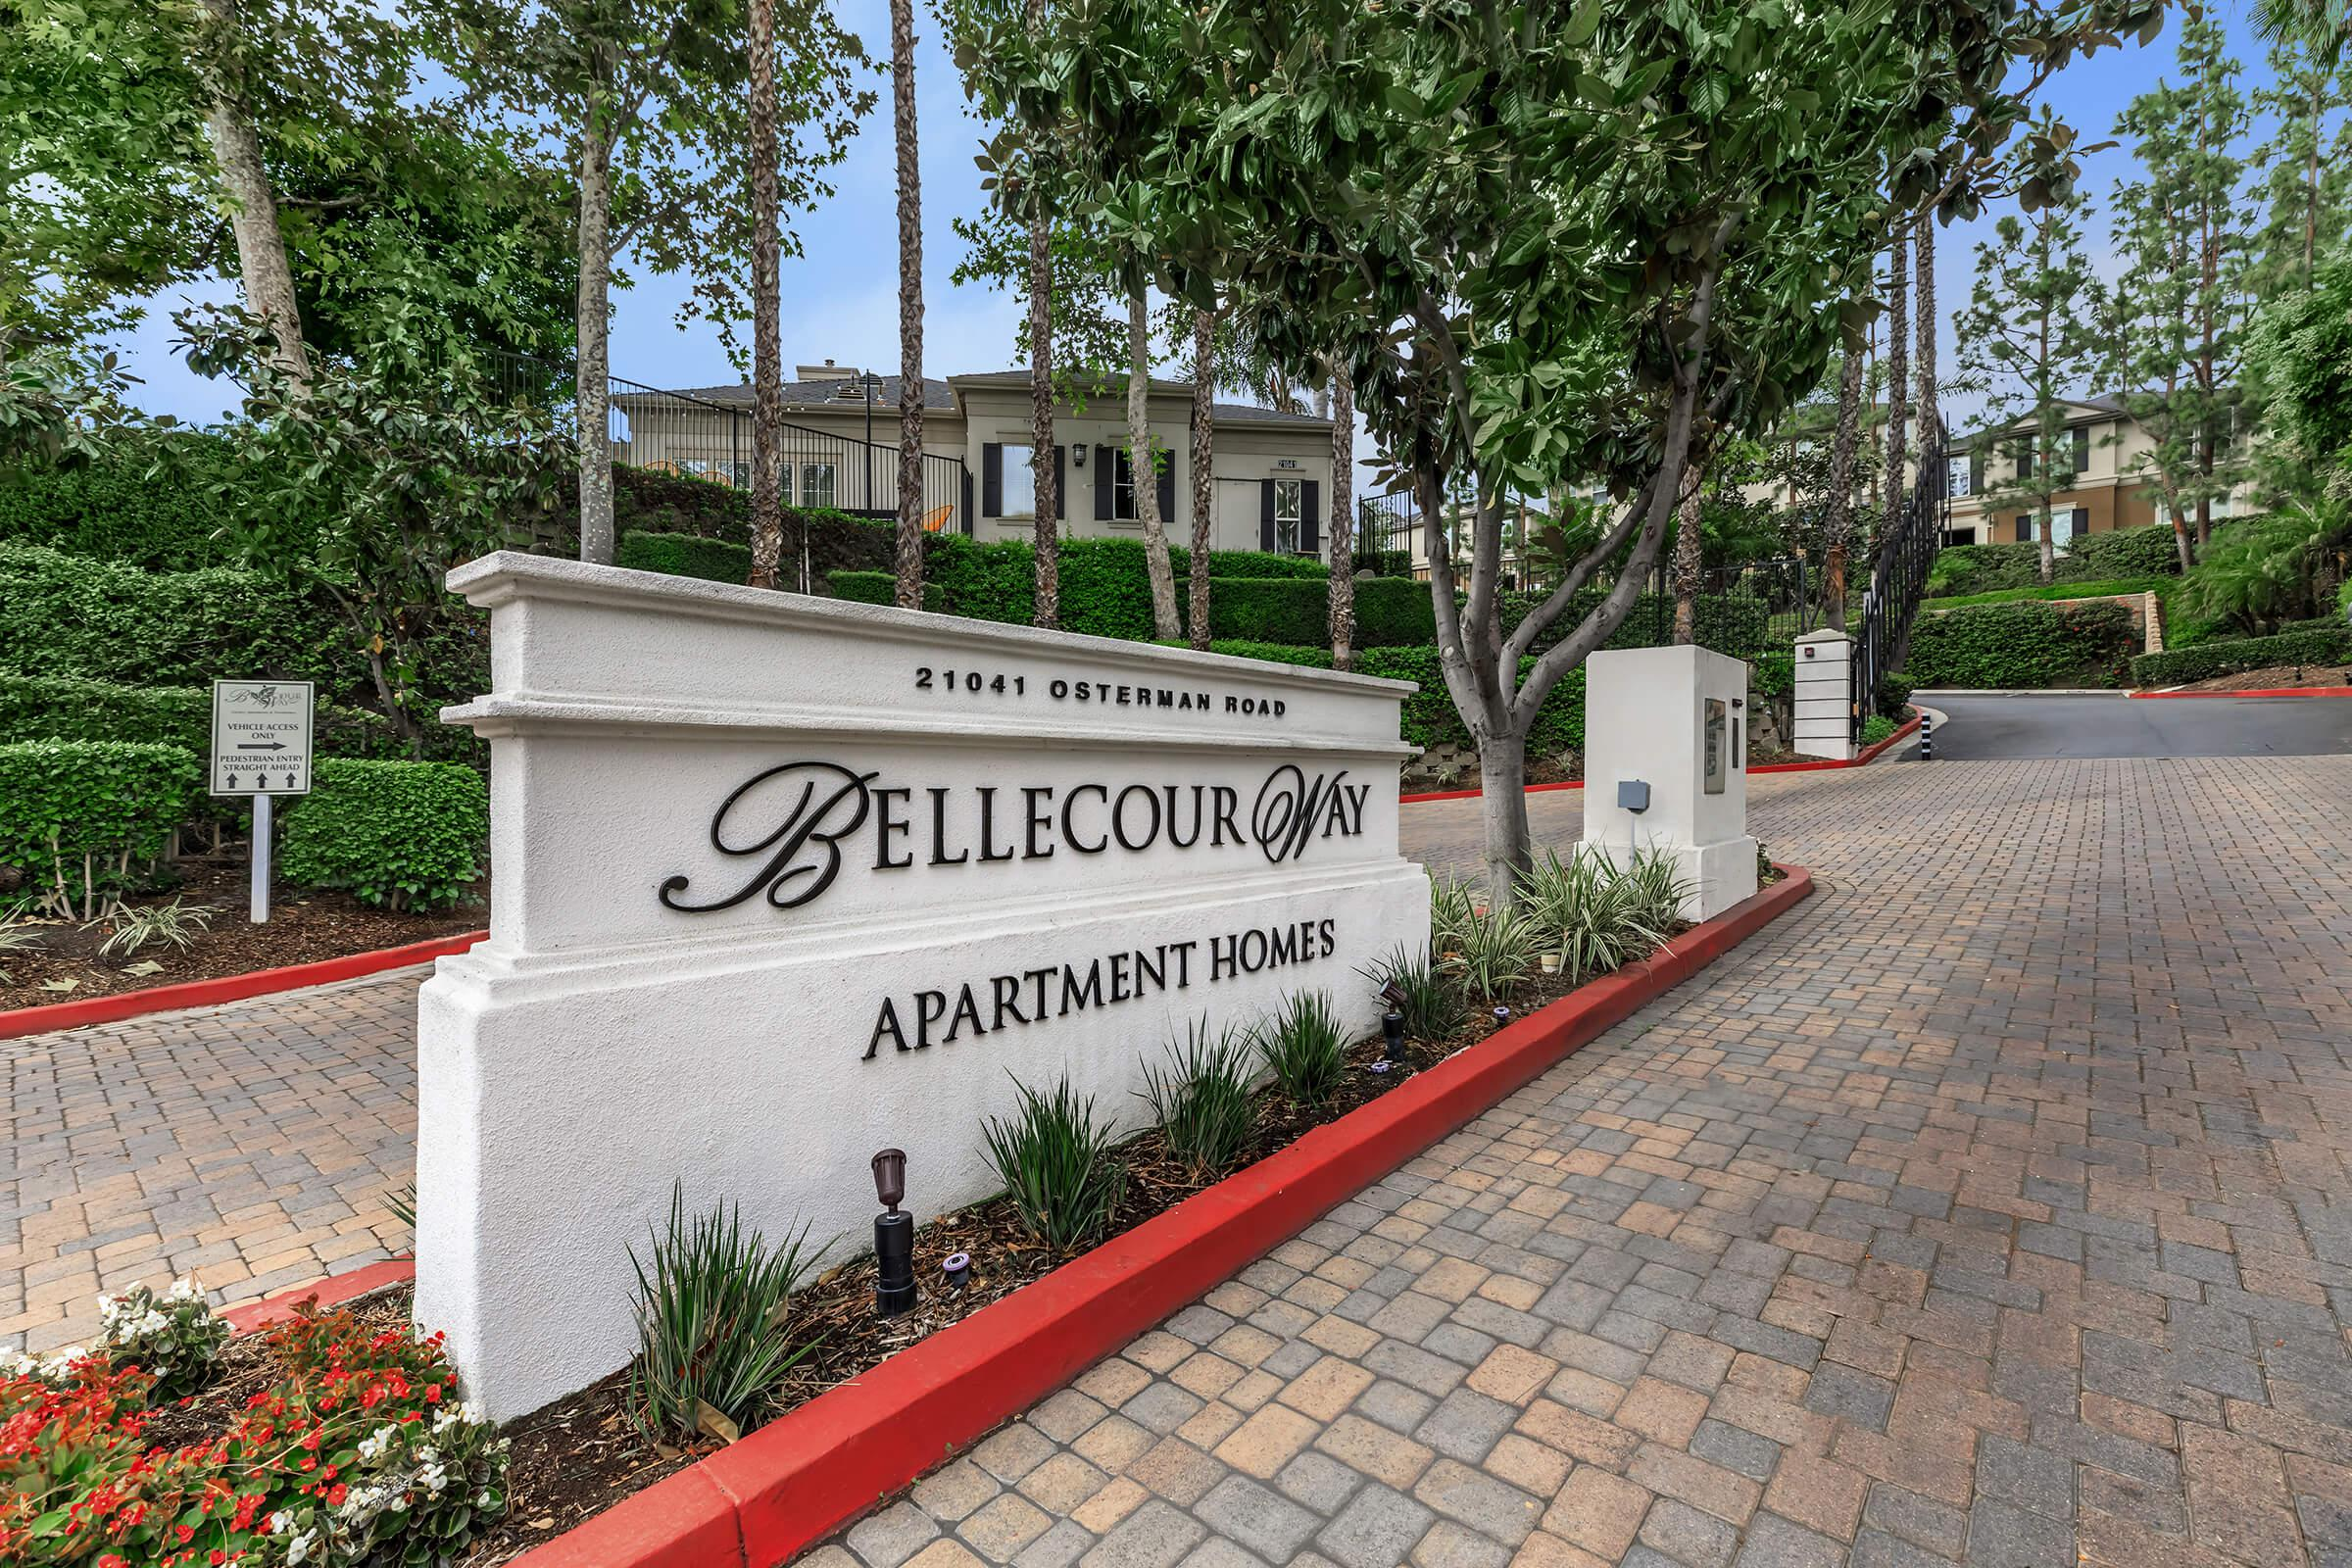 Bellecour Way Apartment Homes monument sign